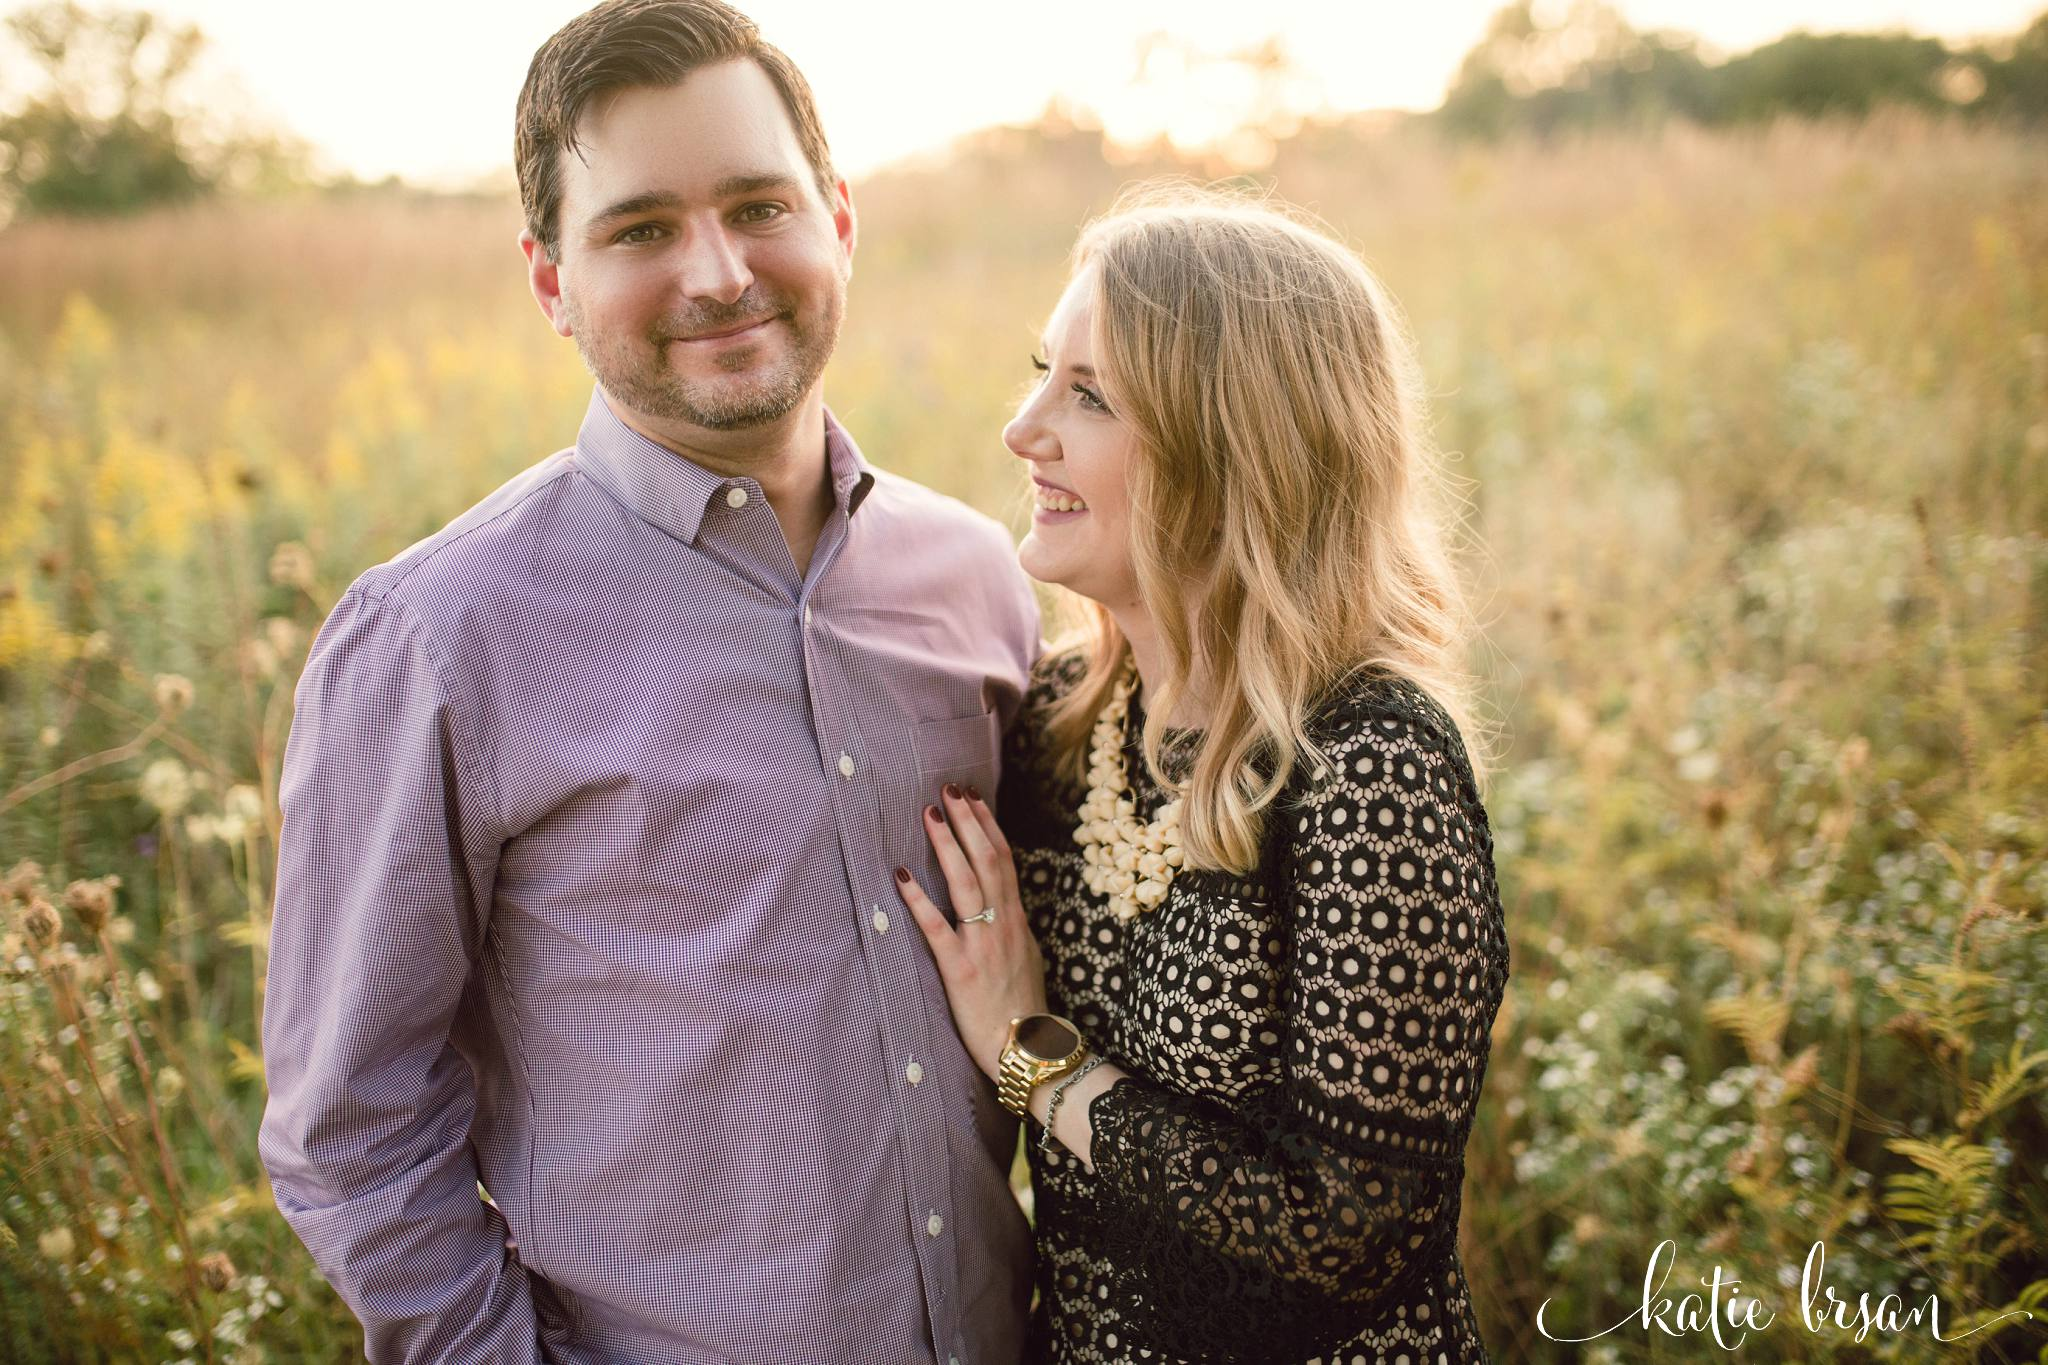 Mokena_EngagementSession_RuffledFeathers_Wedding_0961.jpg